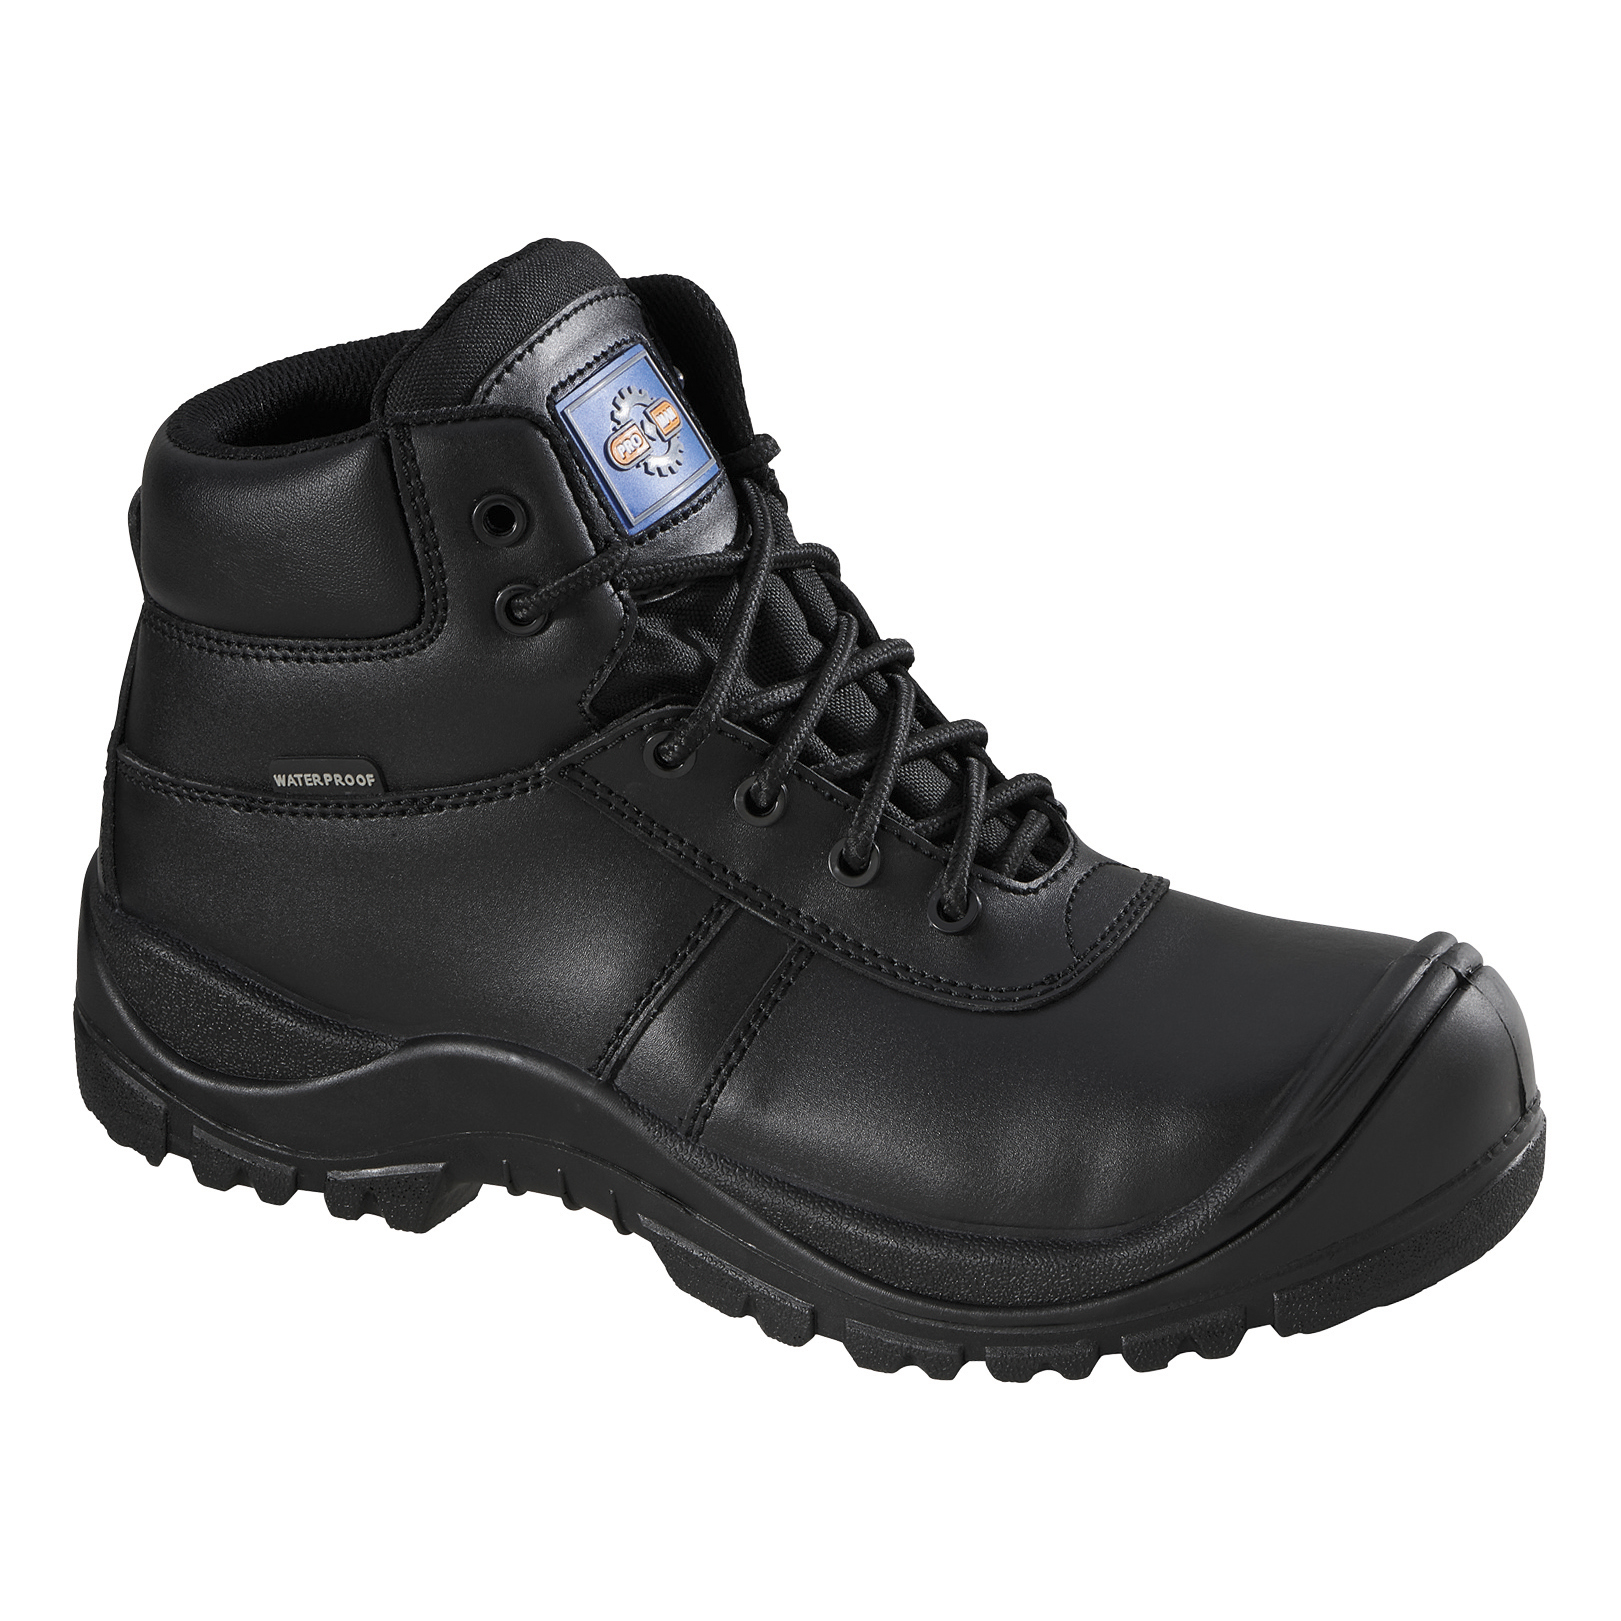 Rockfall Proman Boot Leather Waterproof 100% Non-Metallic Size 9 Black Ref PM4008-9 5-7 Day Leadtime